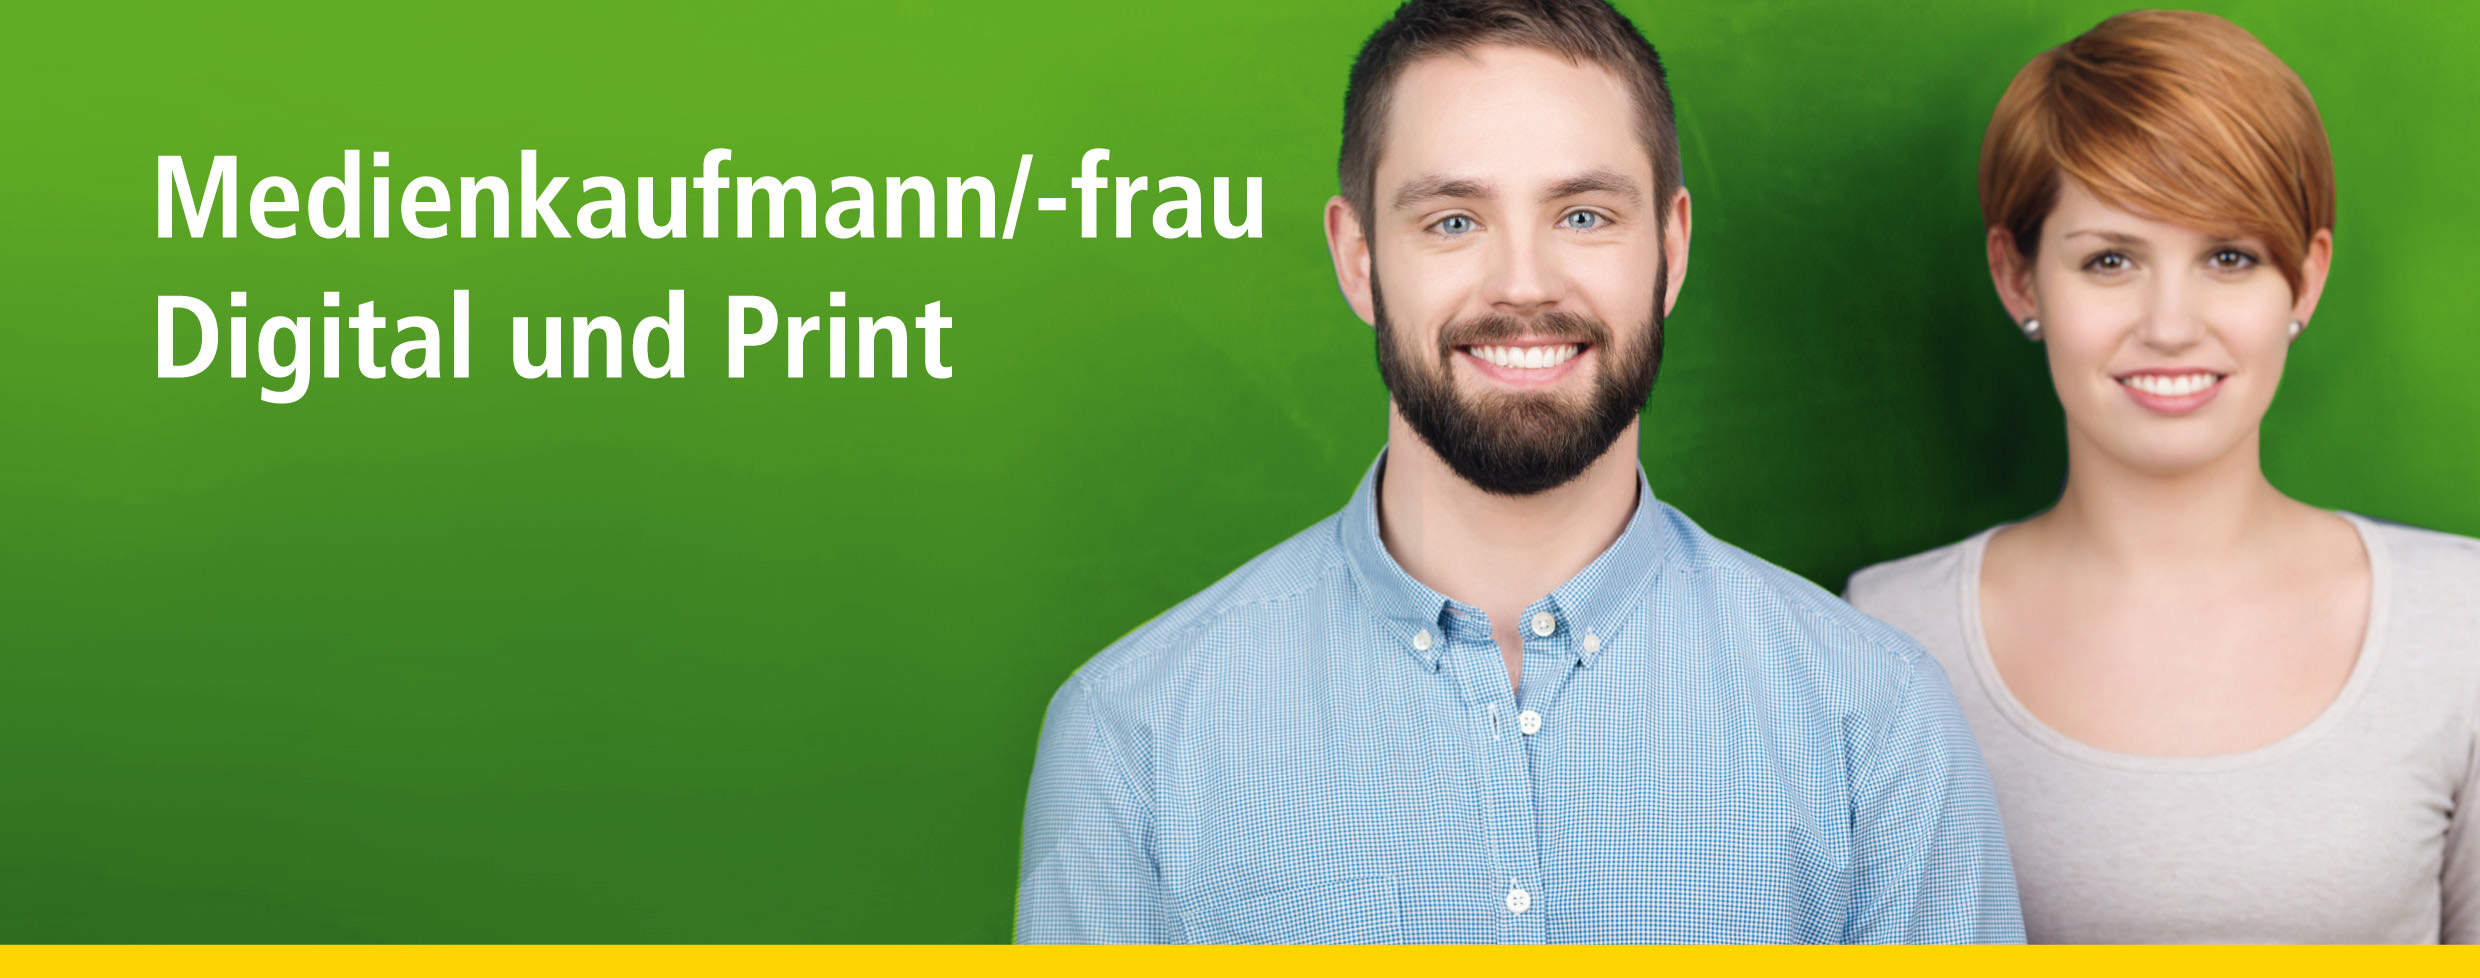 Medienkauffrau header